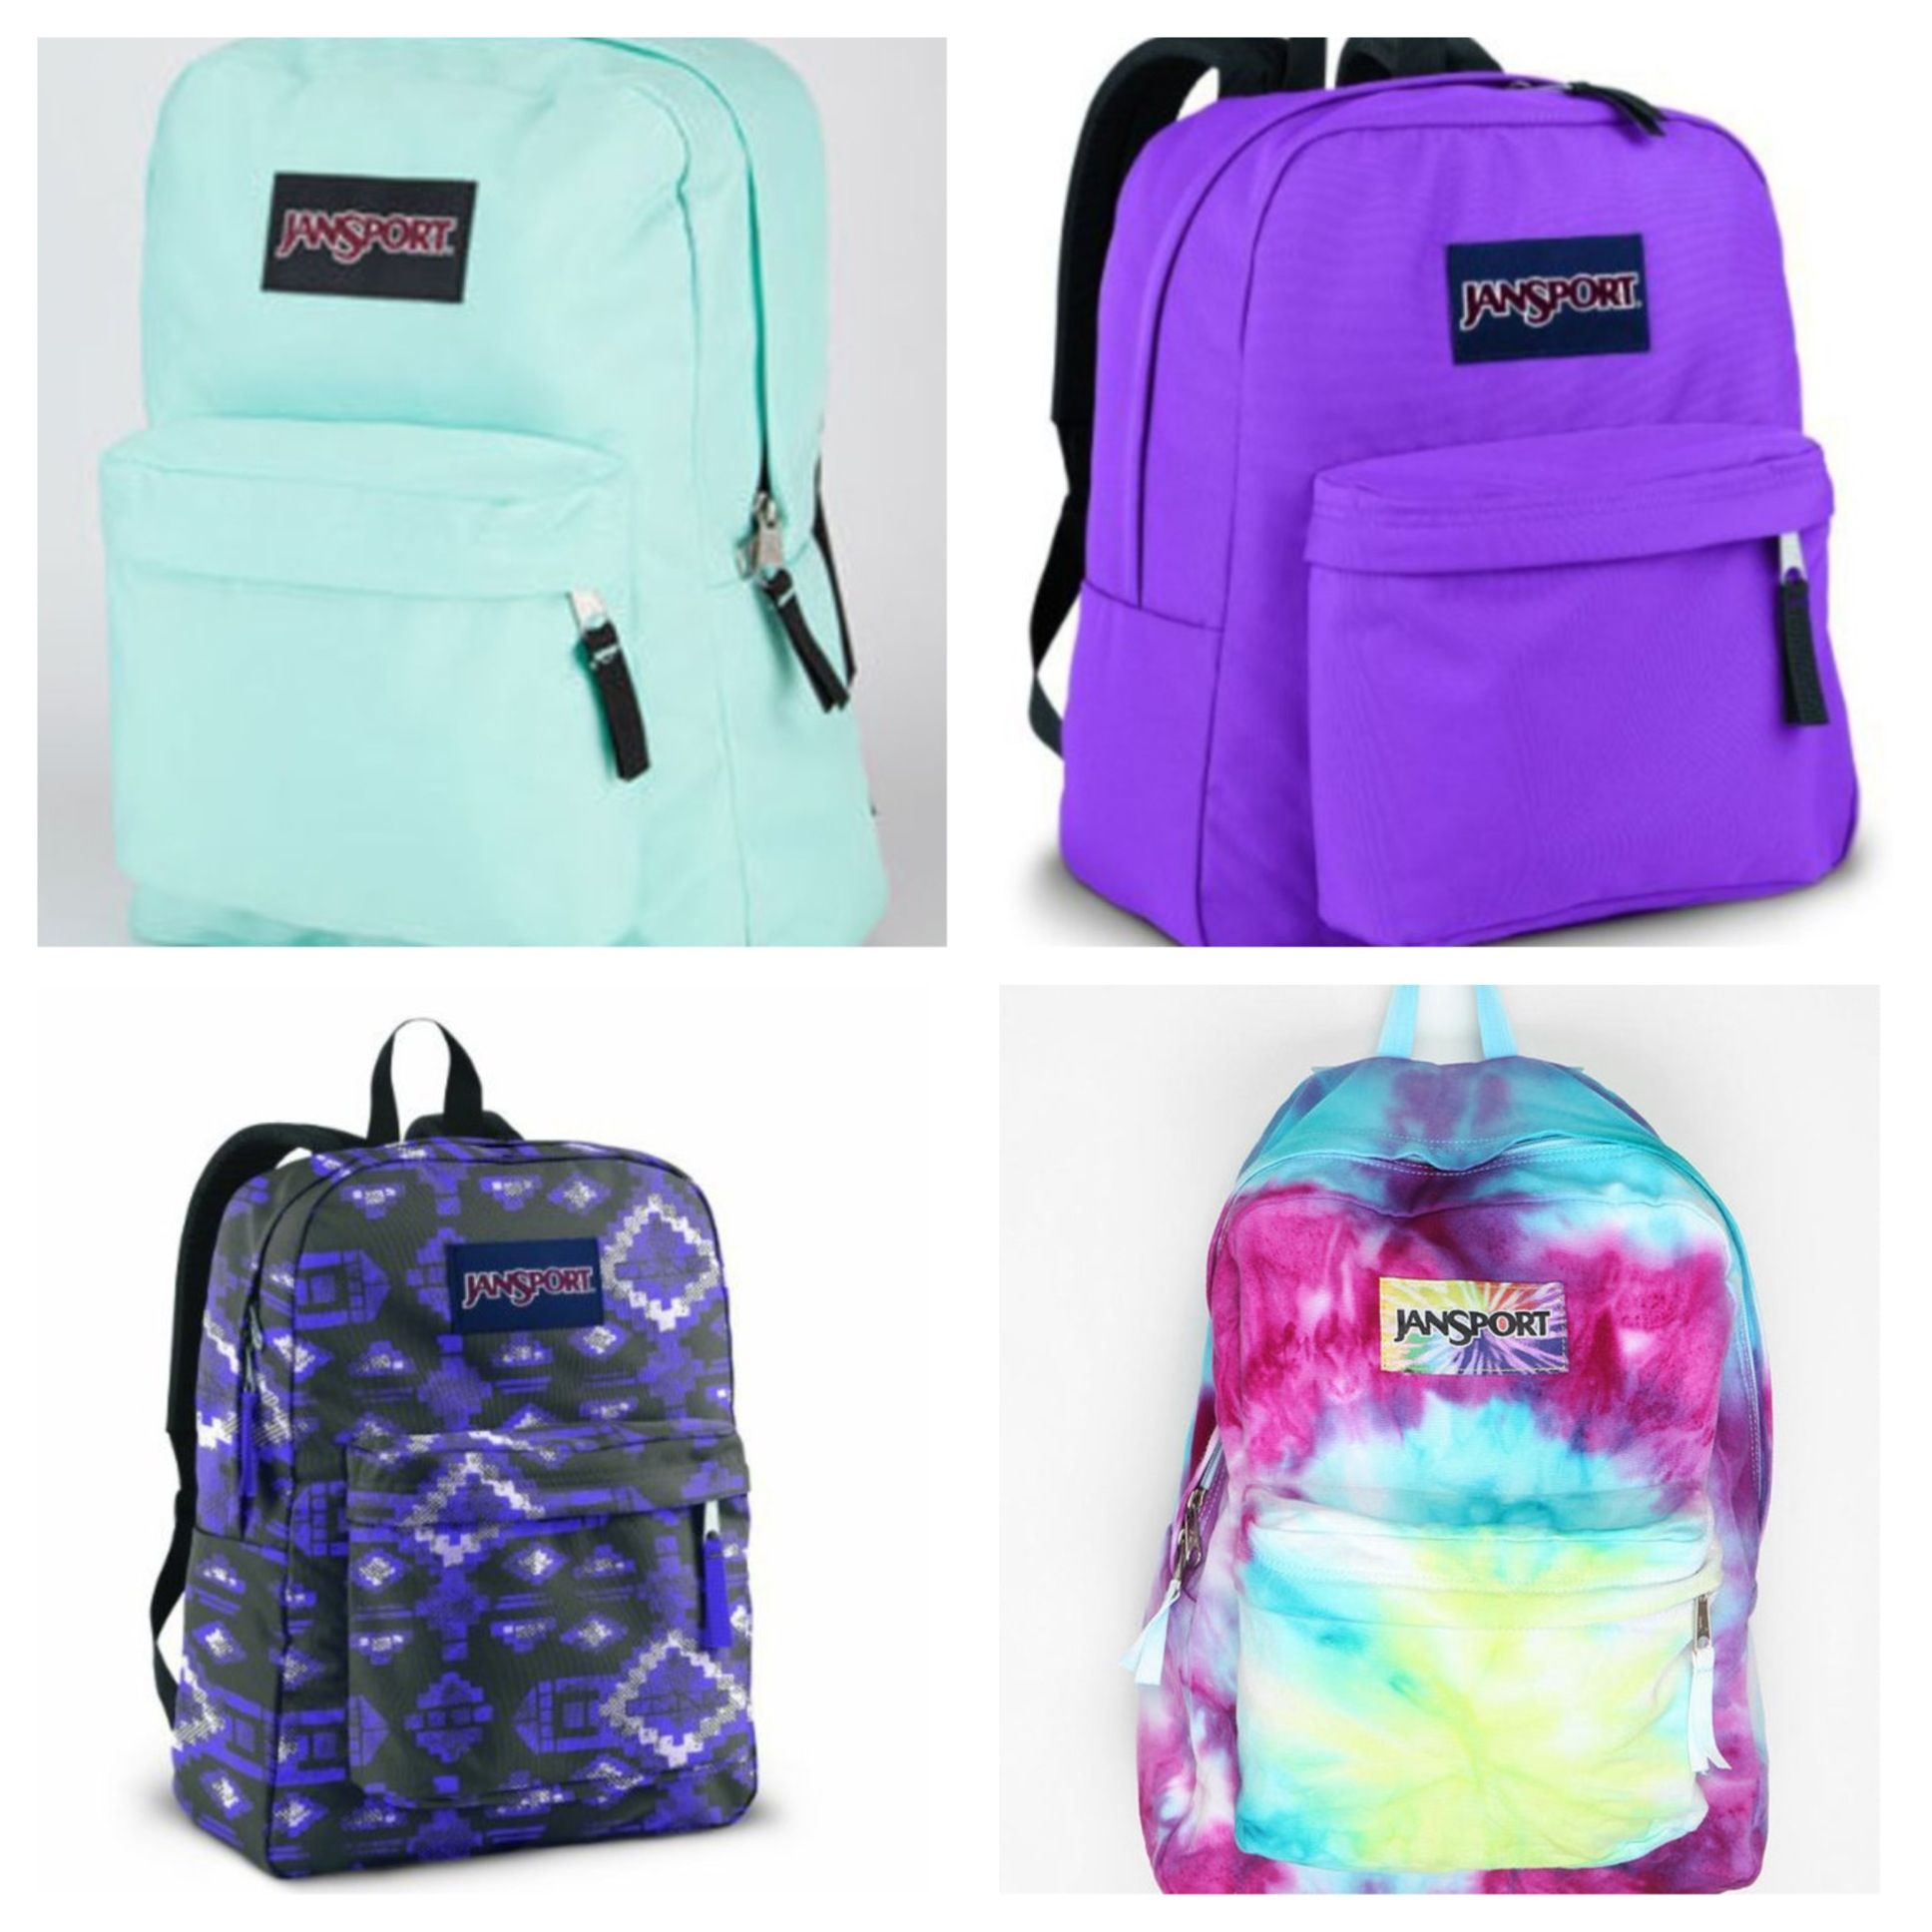 Jansport backpacks I like the top left one | Kiernan | Pinterest ...